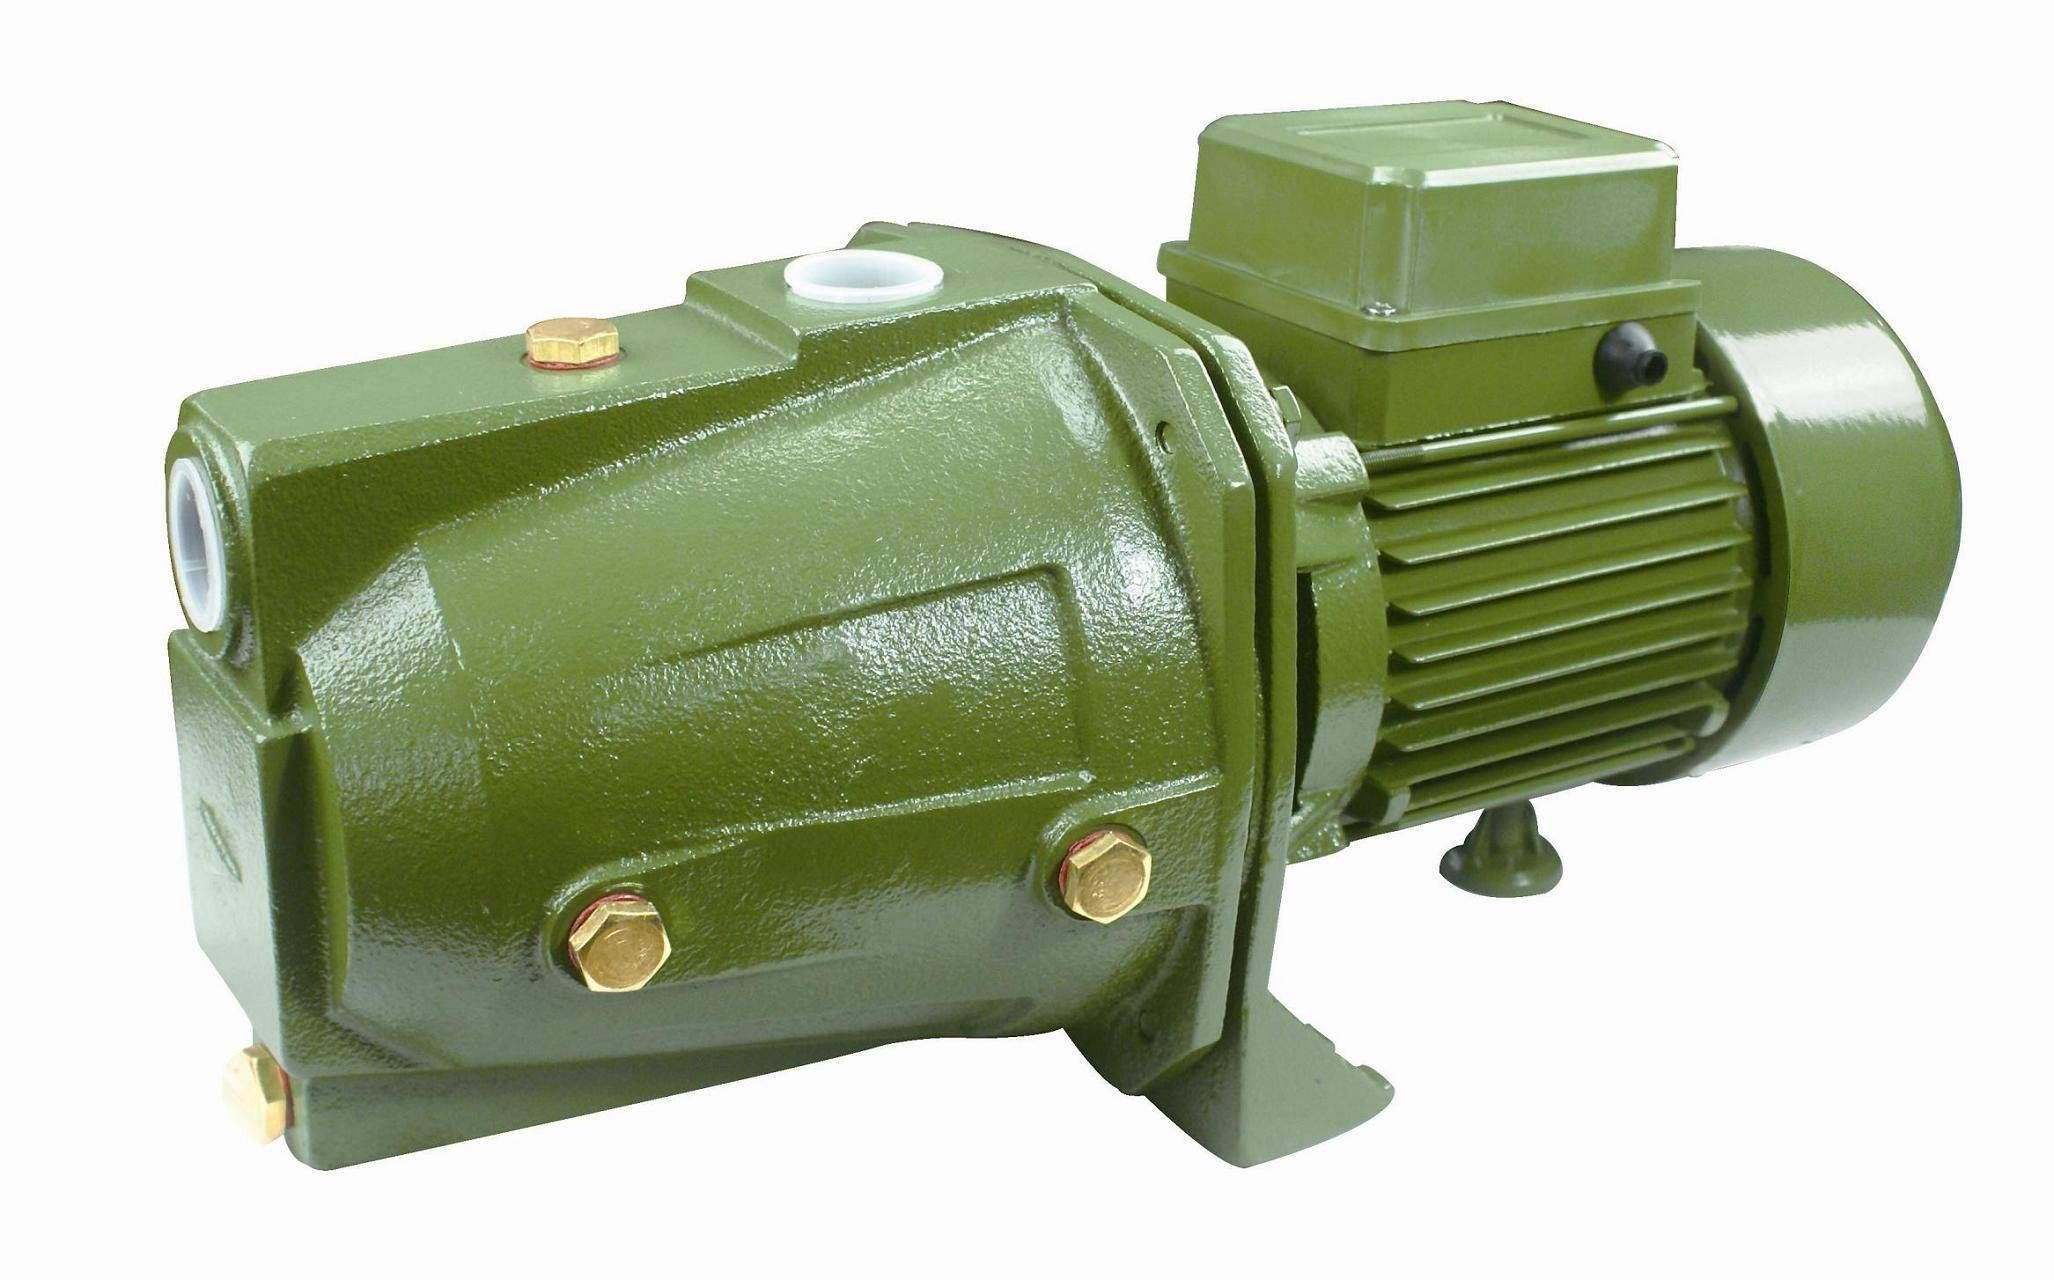 Buy Online Water Pumps In Bangalore Http Www Glowship Com Pumps Html Pumps Online Pumps